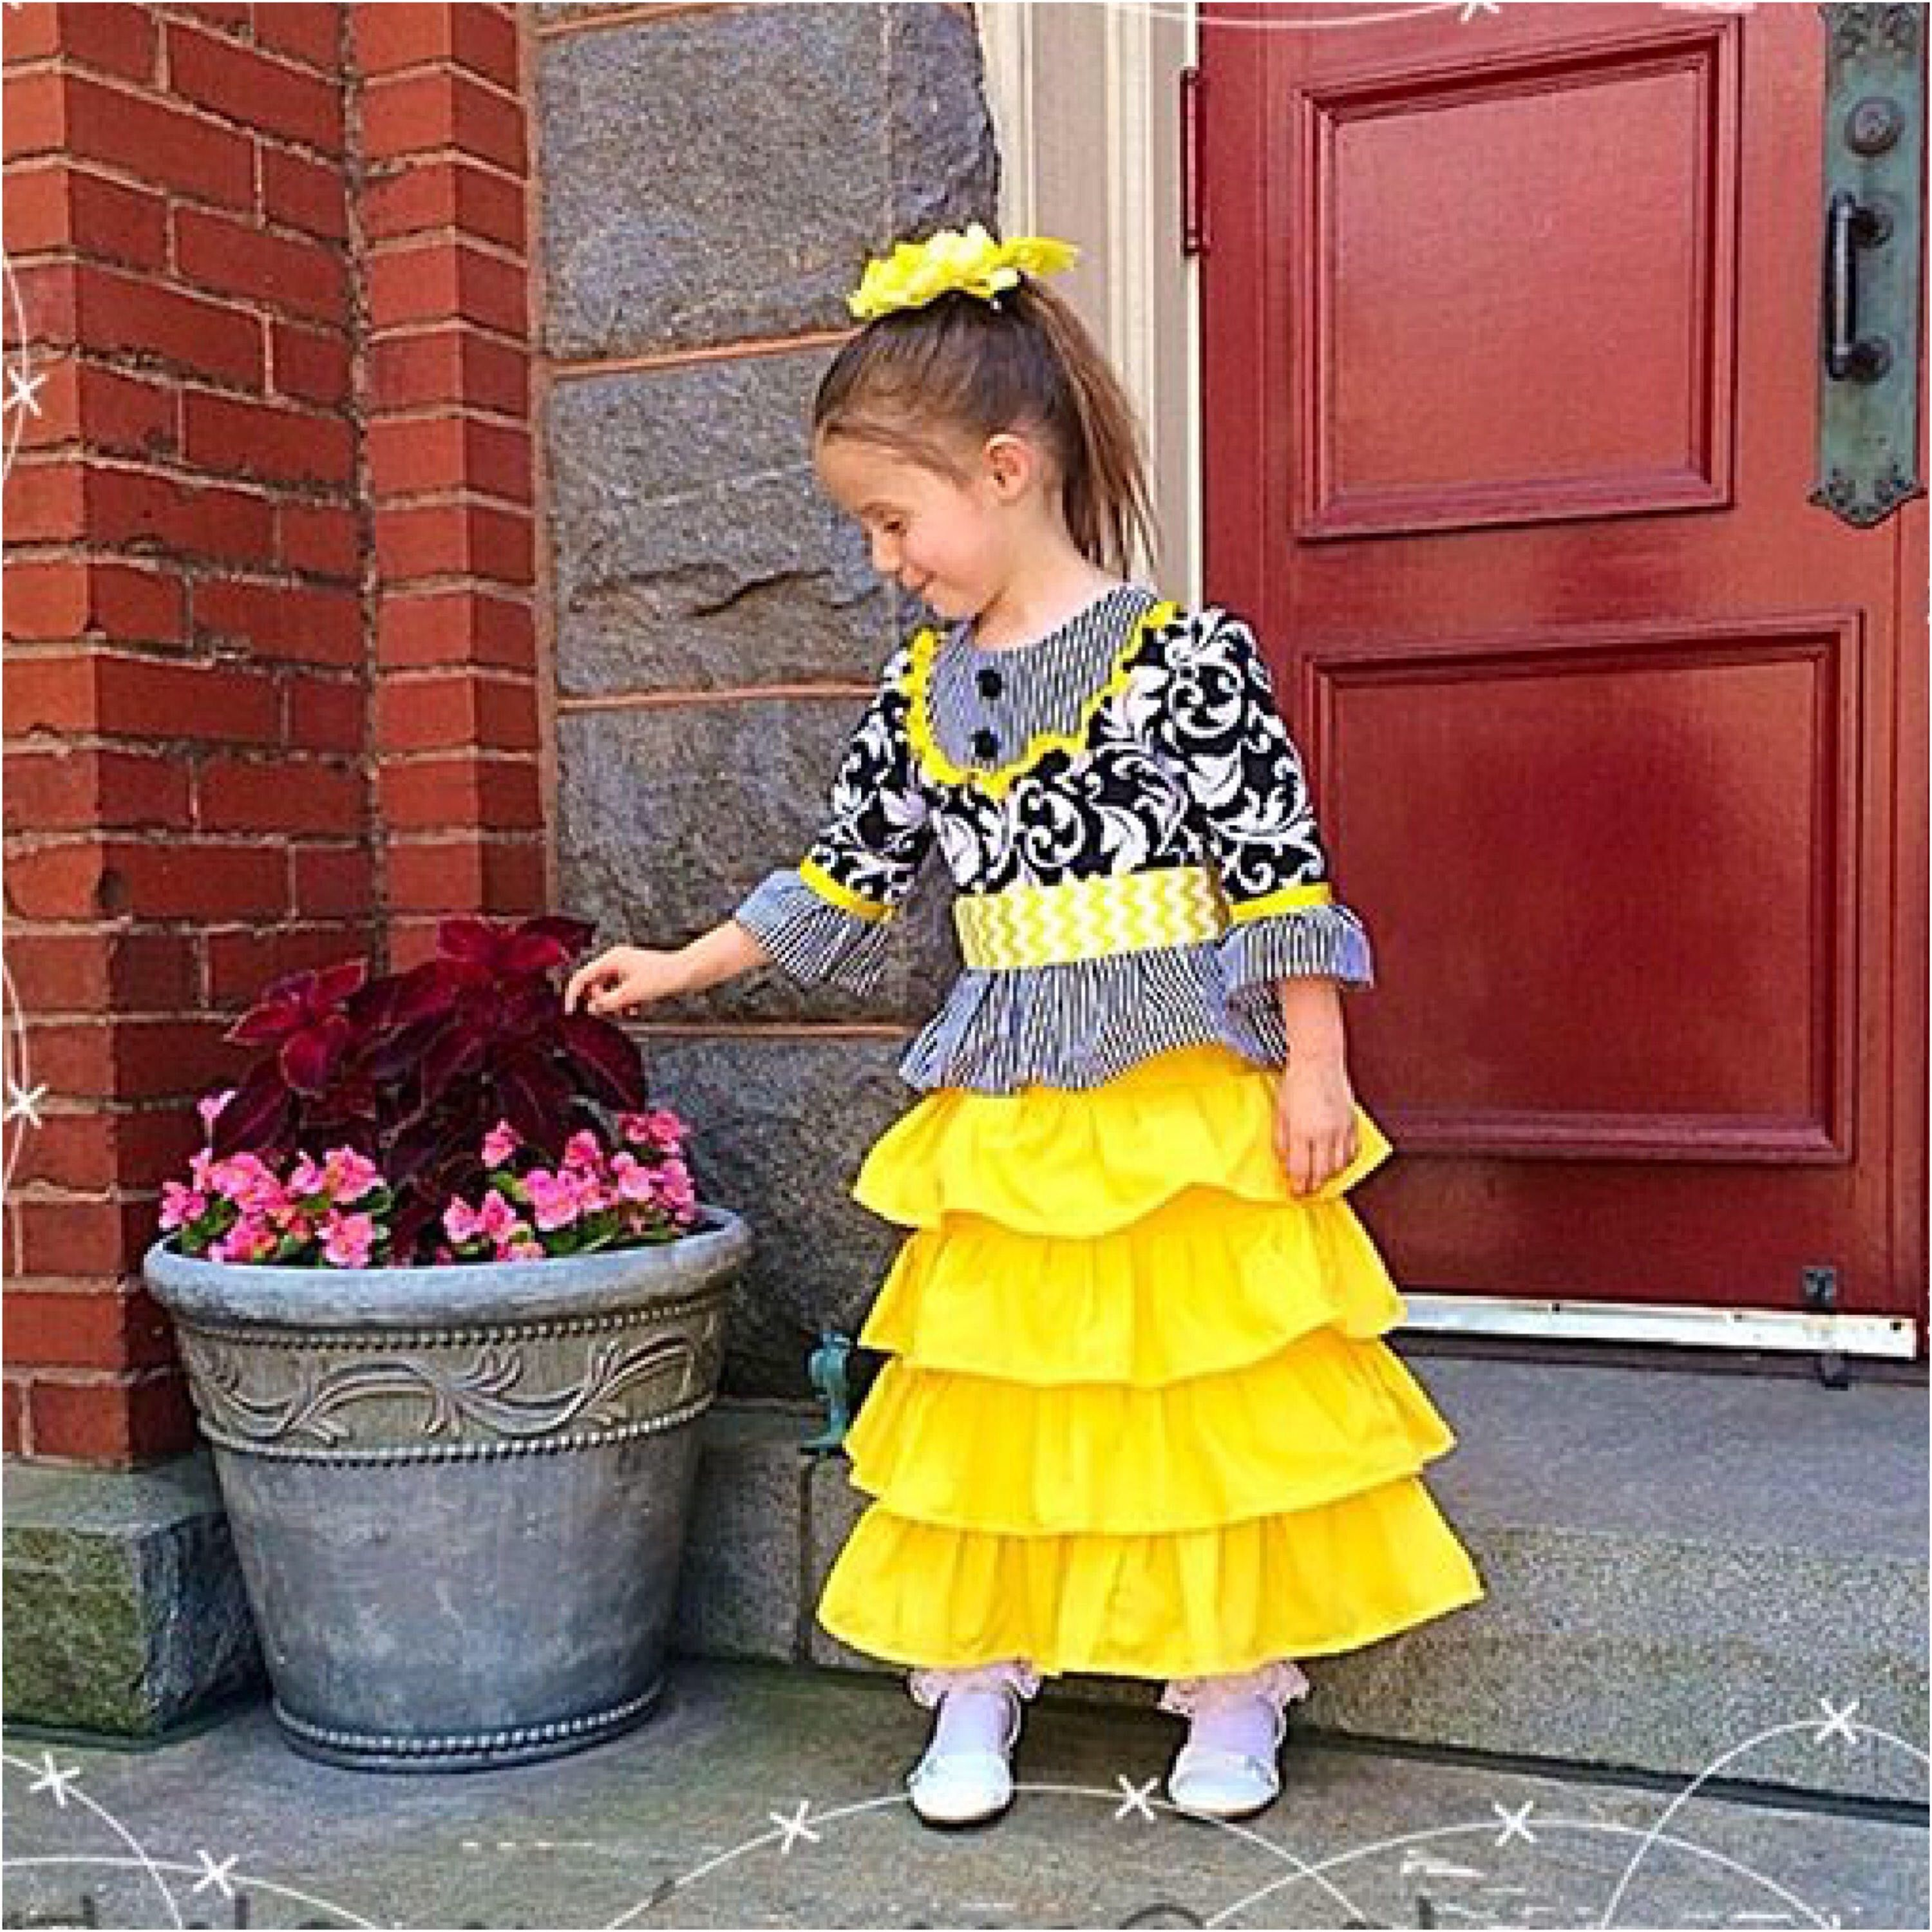 Girls Bright Cheery Yellow Easter Dresses. Repin to Your Beautiful